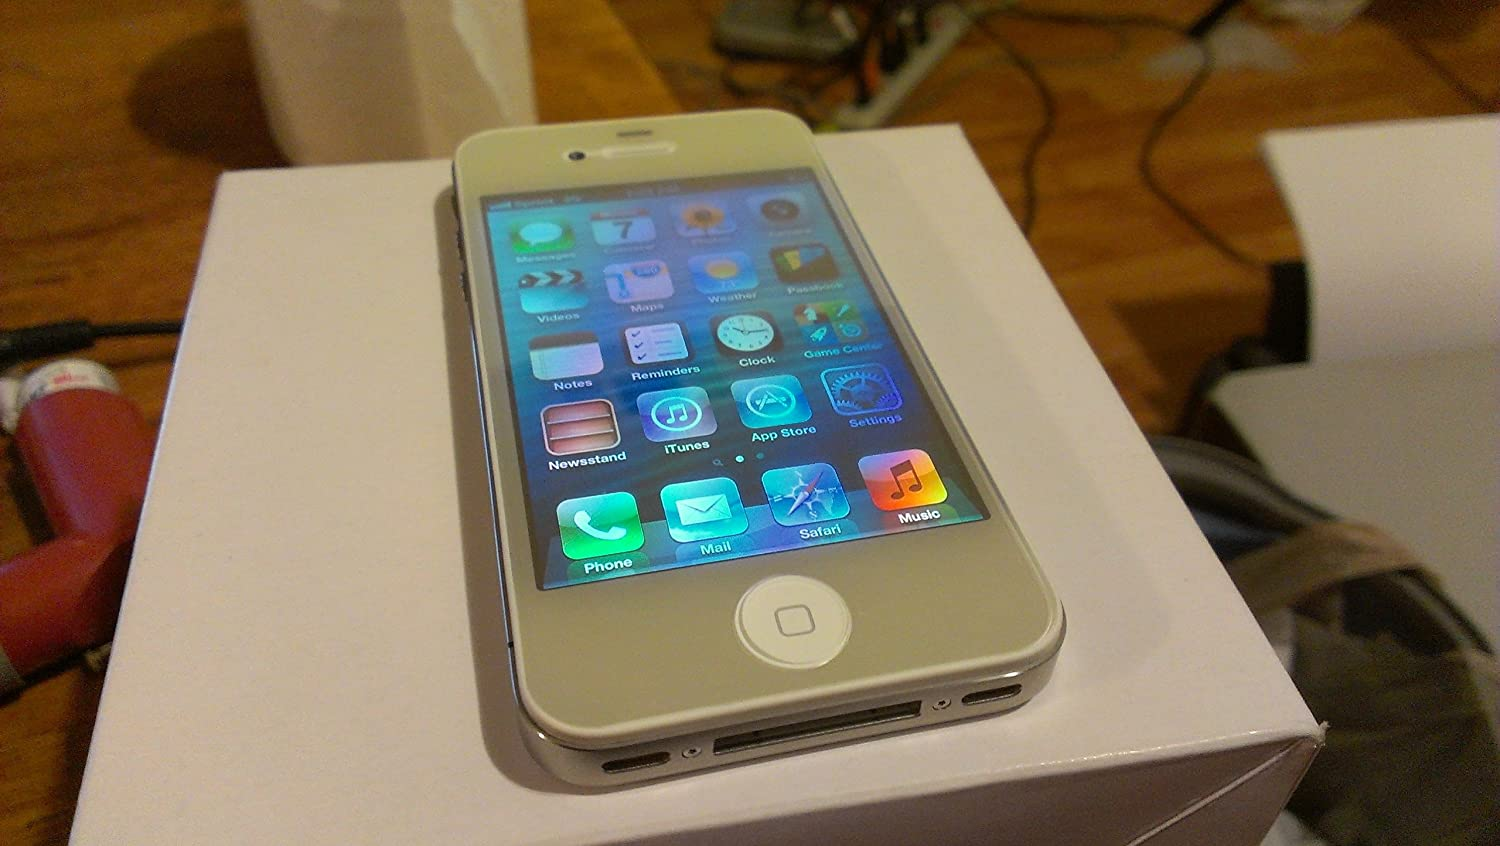 Iphone 4 8gb Libre Apple Iphone 4 8gb White No Contract Sprint Cell Phone